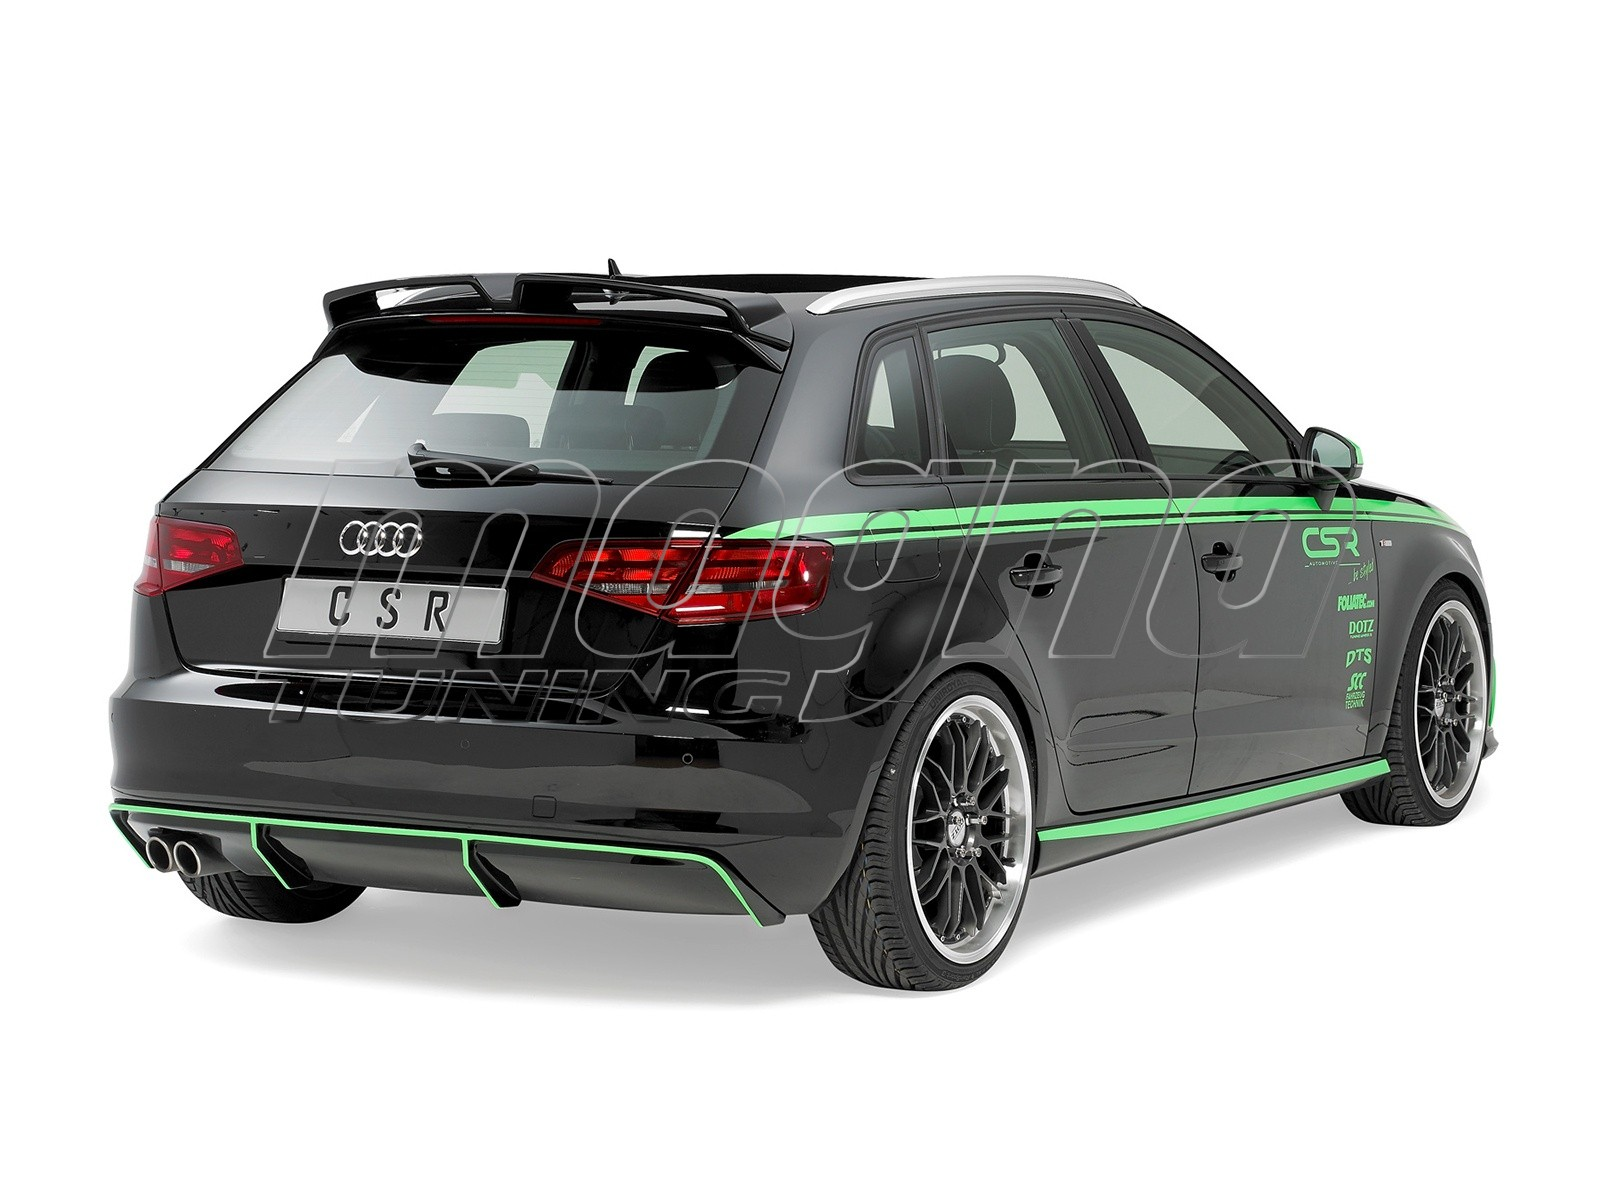 audi a3 8v newline rear bumper extension. Black Bedroom Furniture Sets. Home Design Ideas